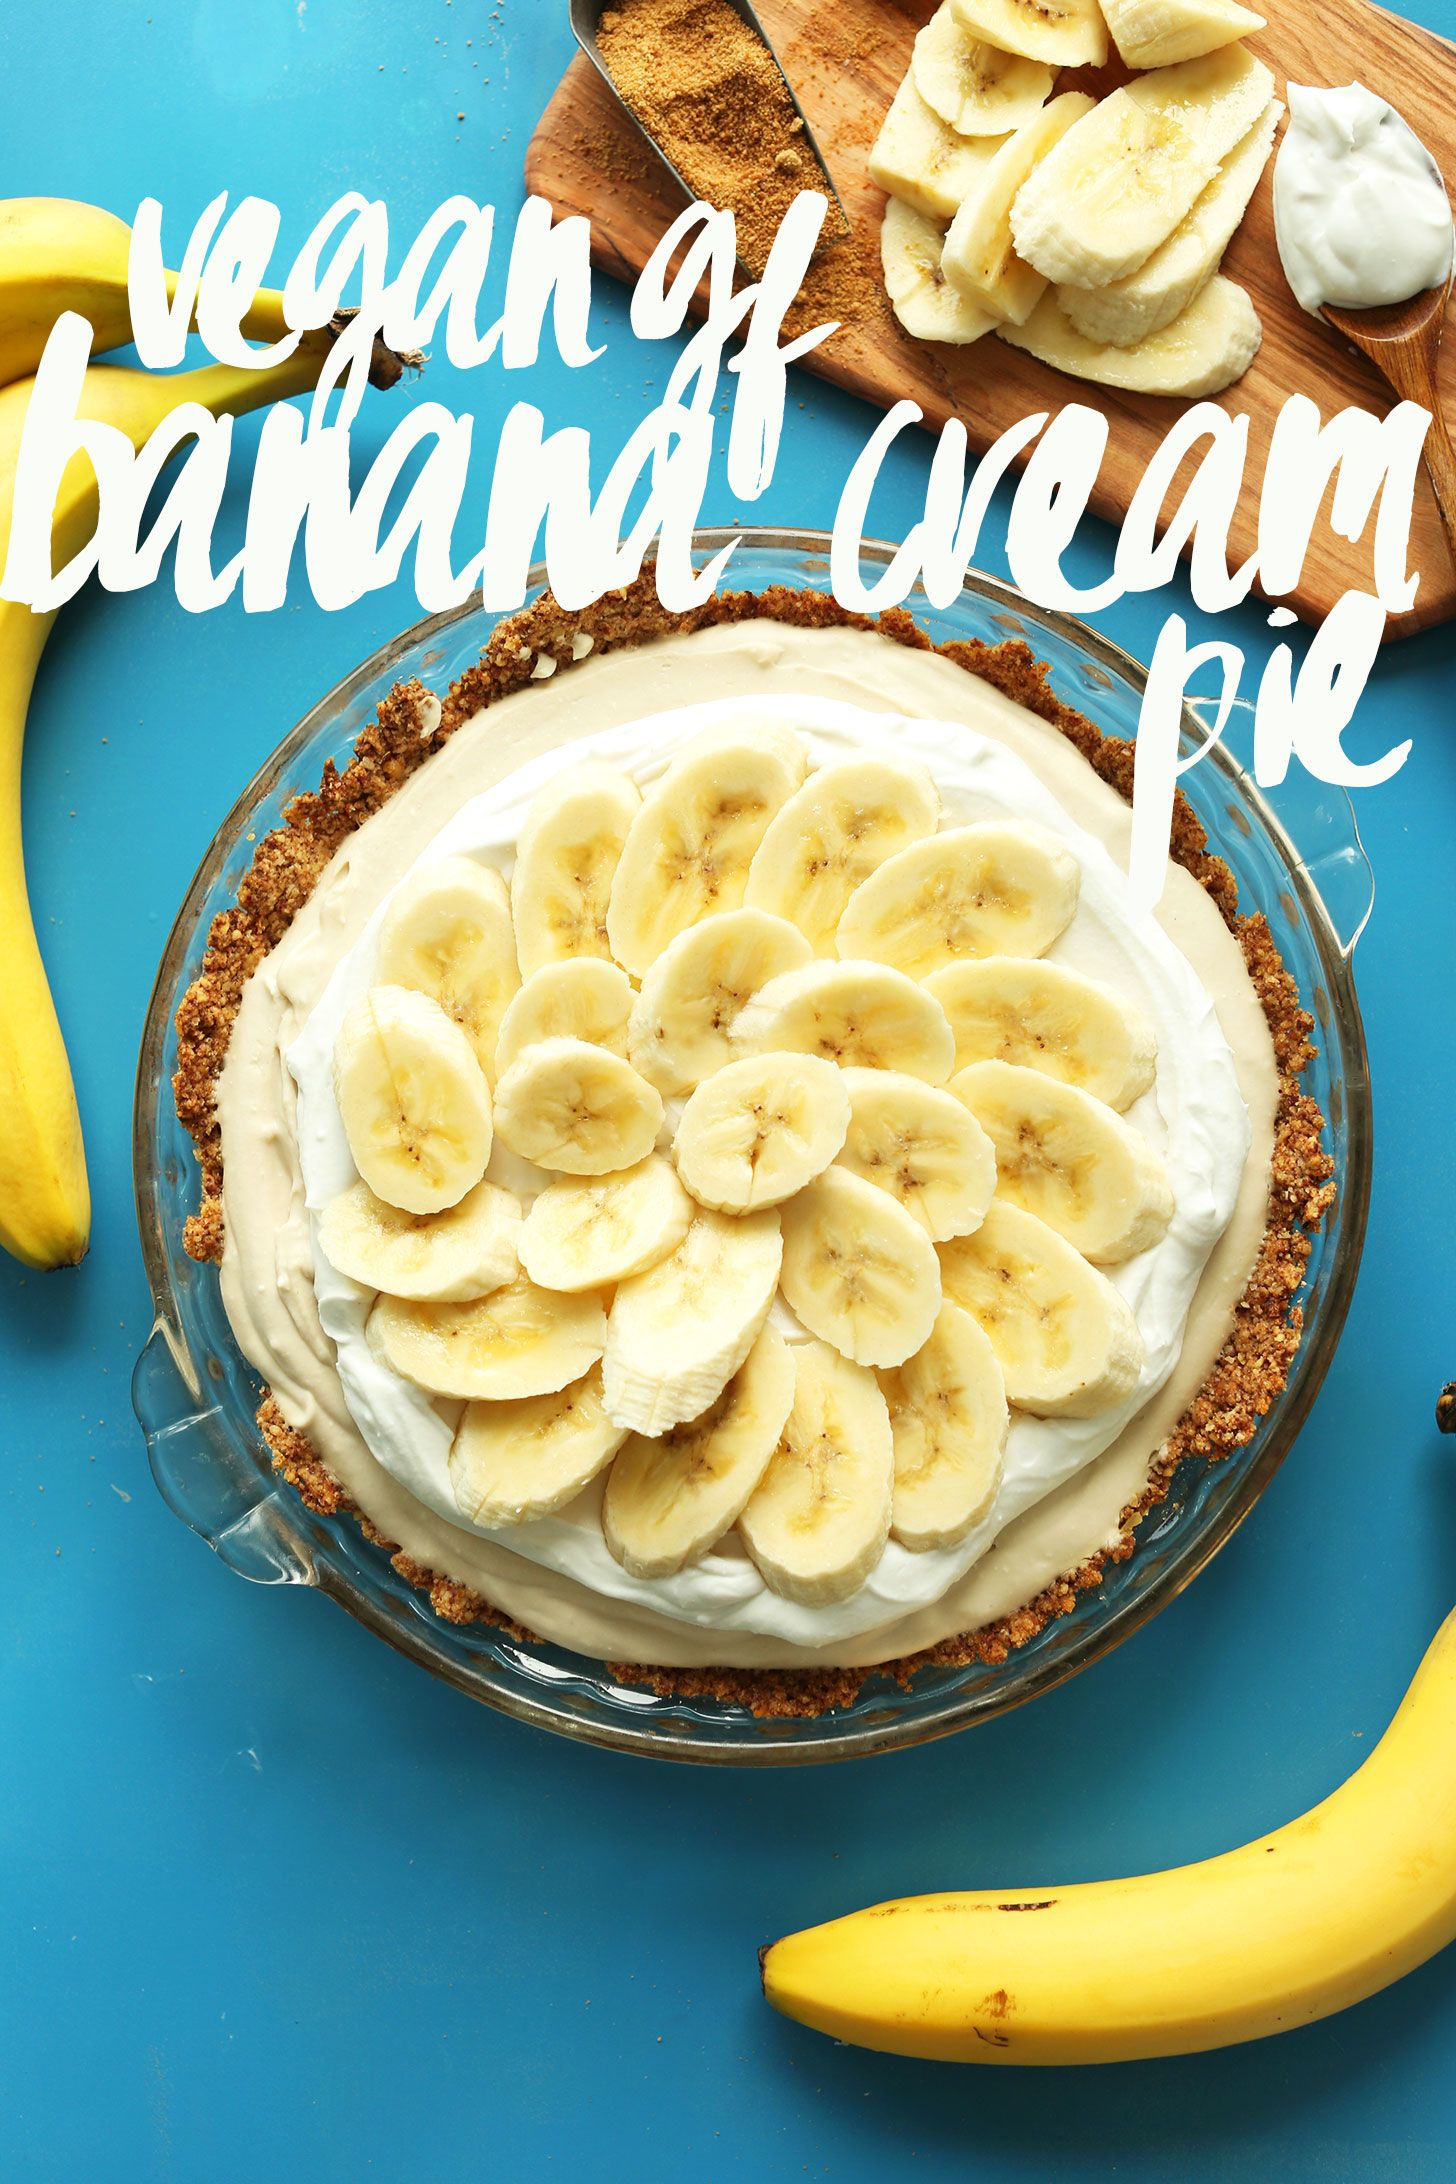 Vegan Banana Cream Pie | Minimalist Baker Recipes